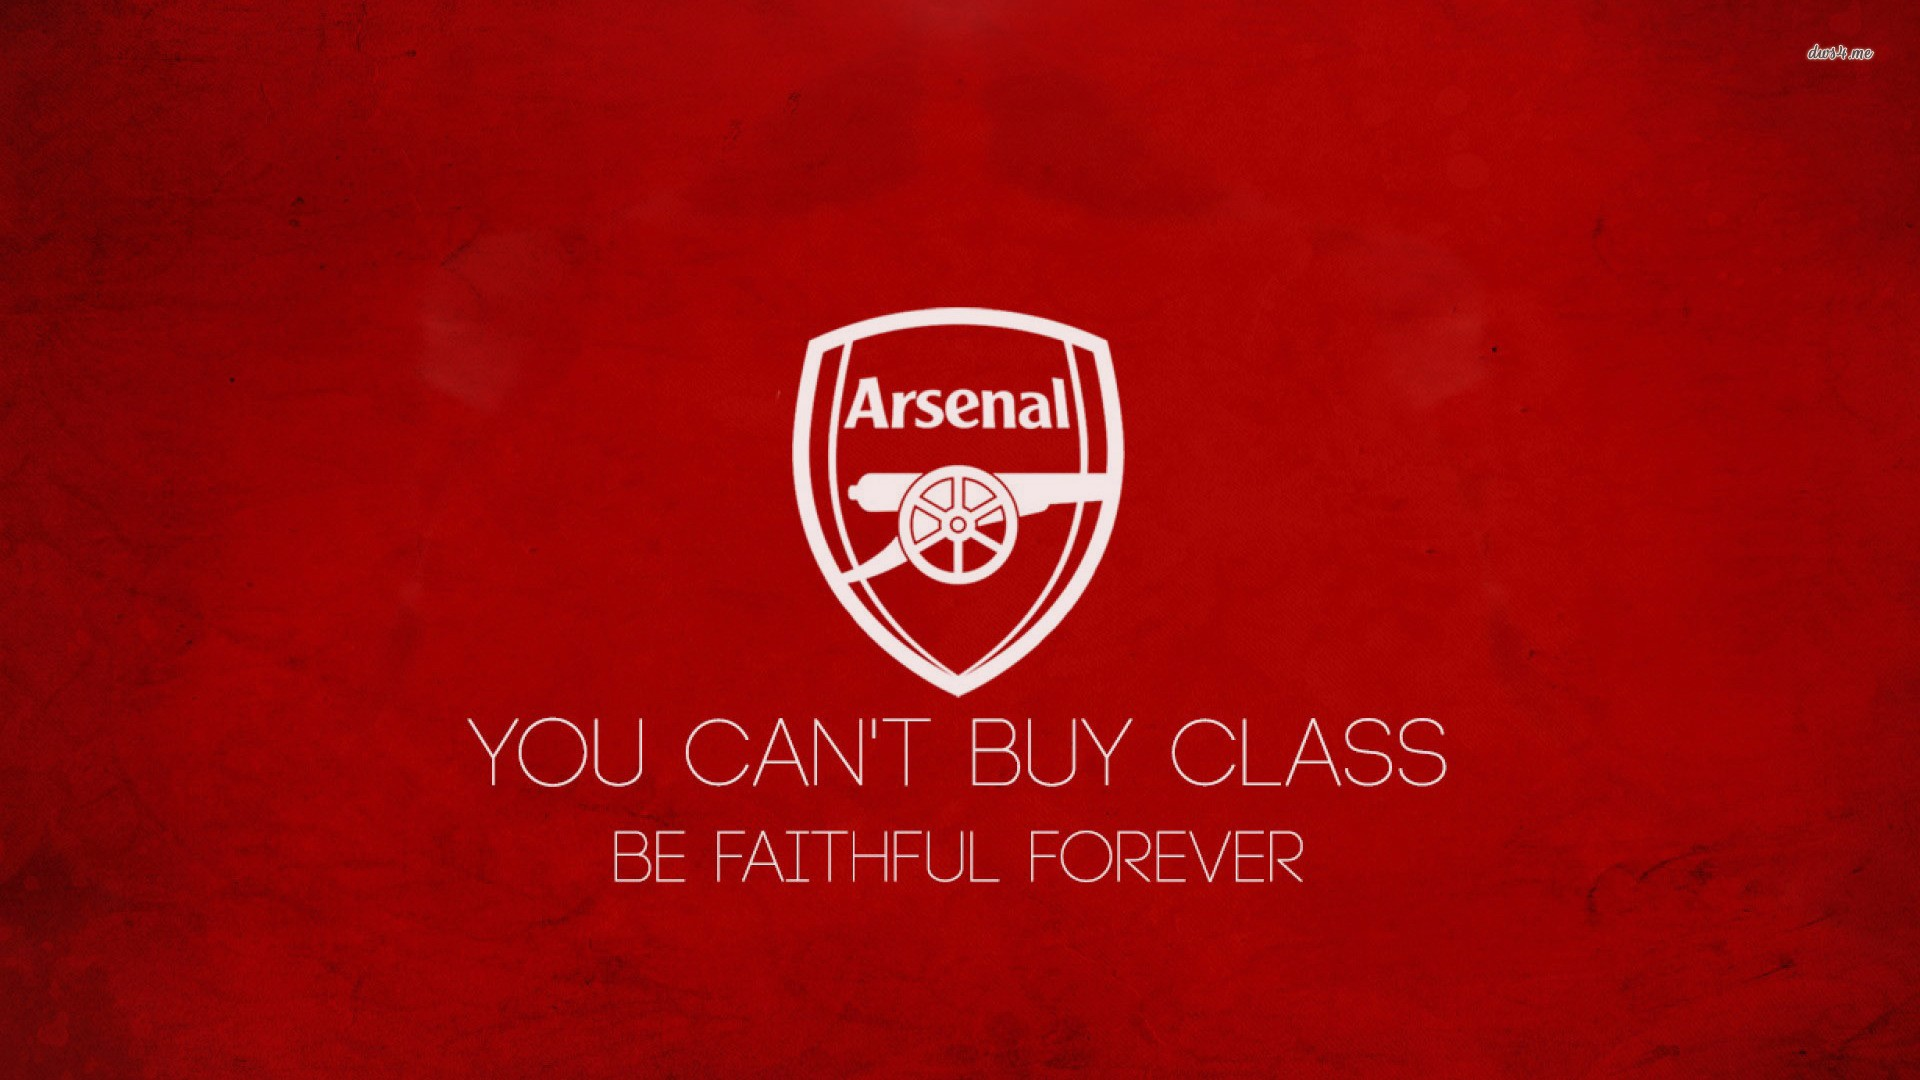 Arsenal Fc Wallpaper